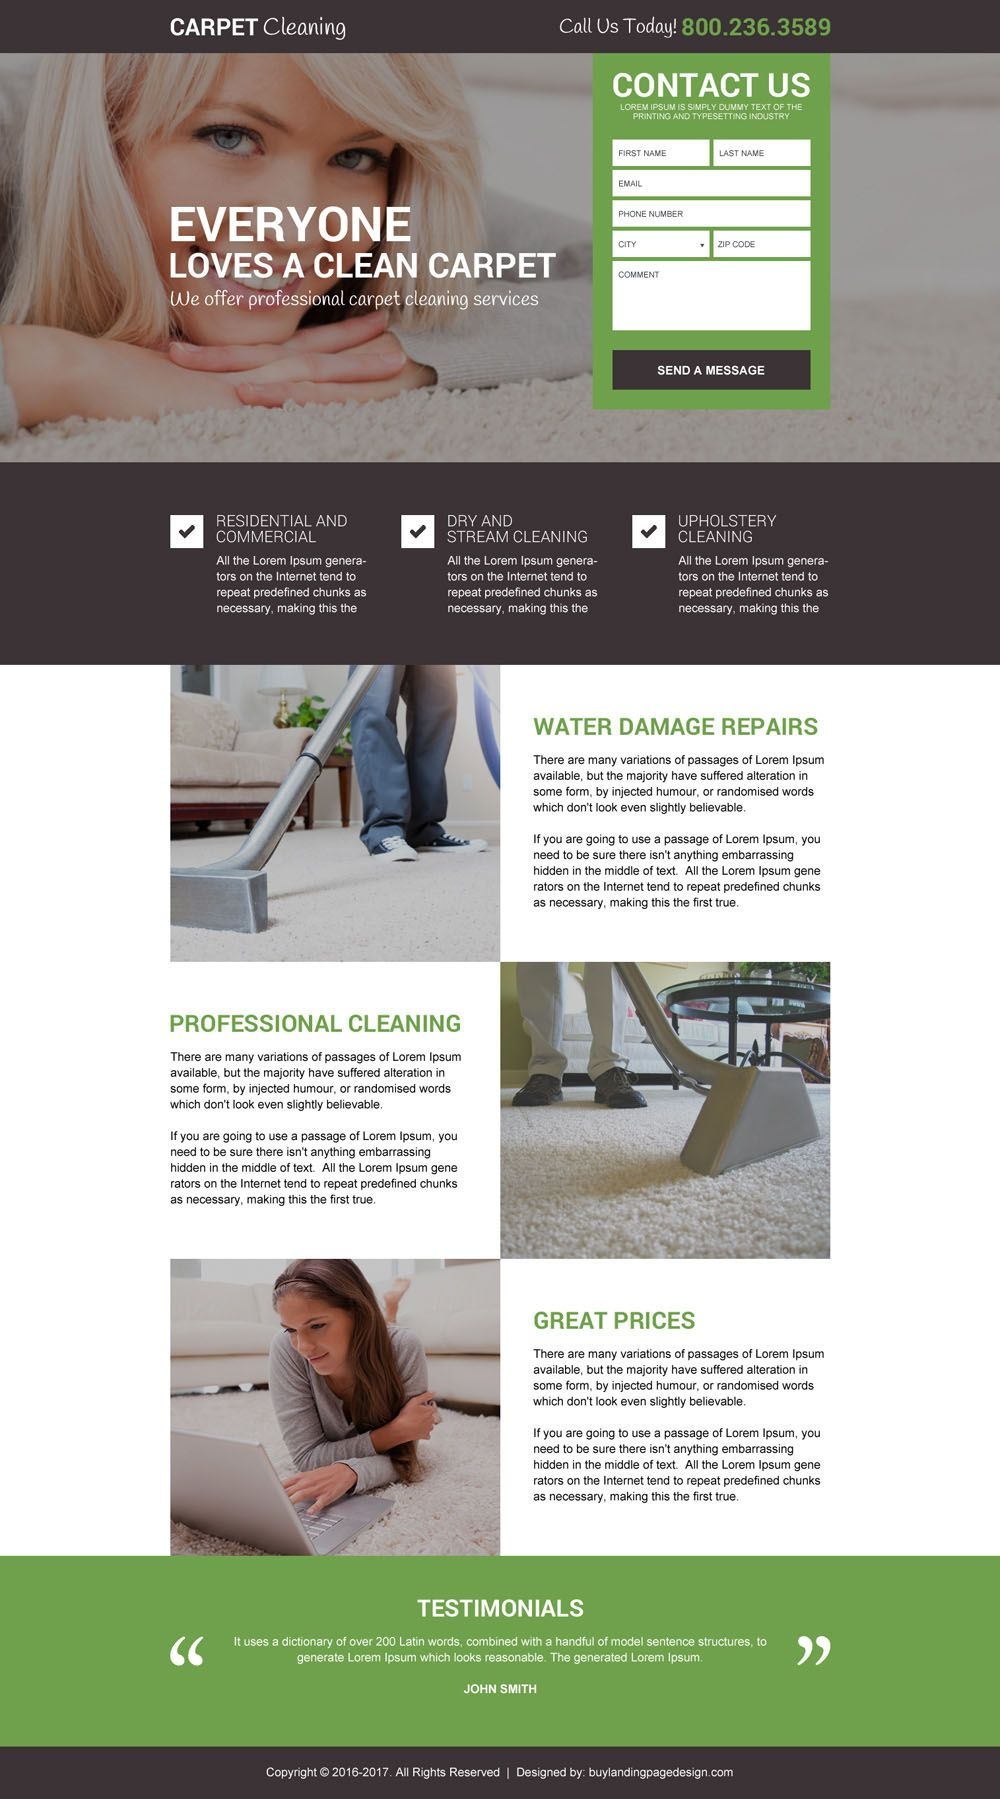 Carpet Quote Carpet Cleaning Service Free Quote Landing Page Design  Buy